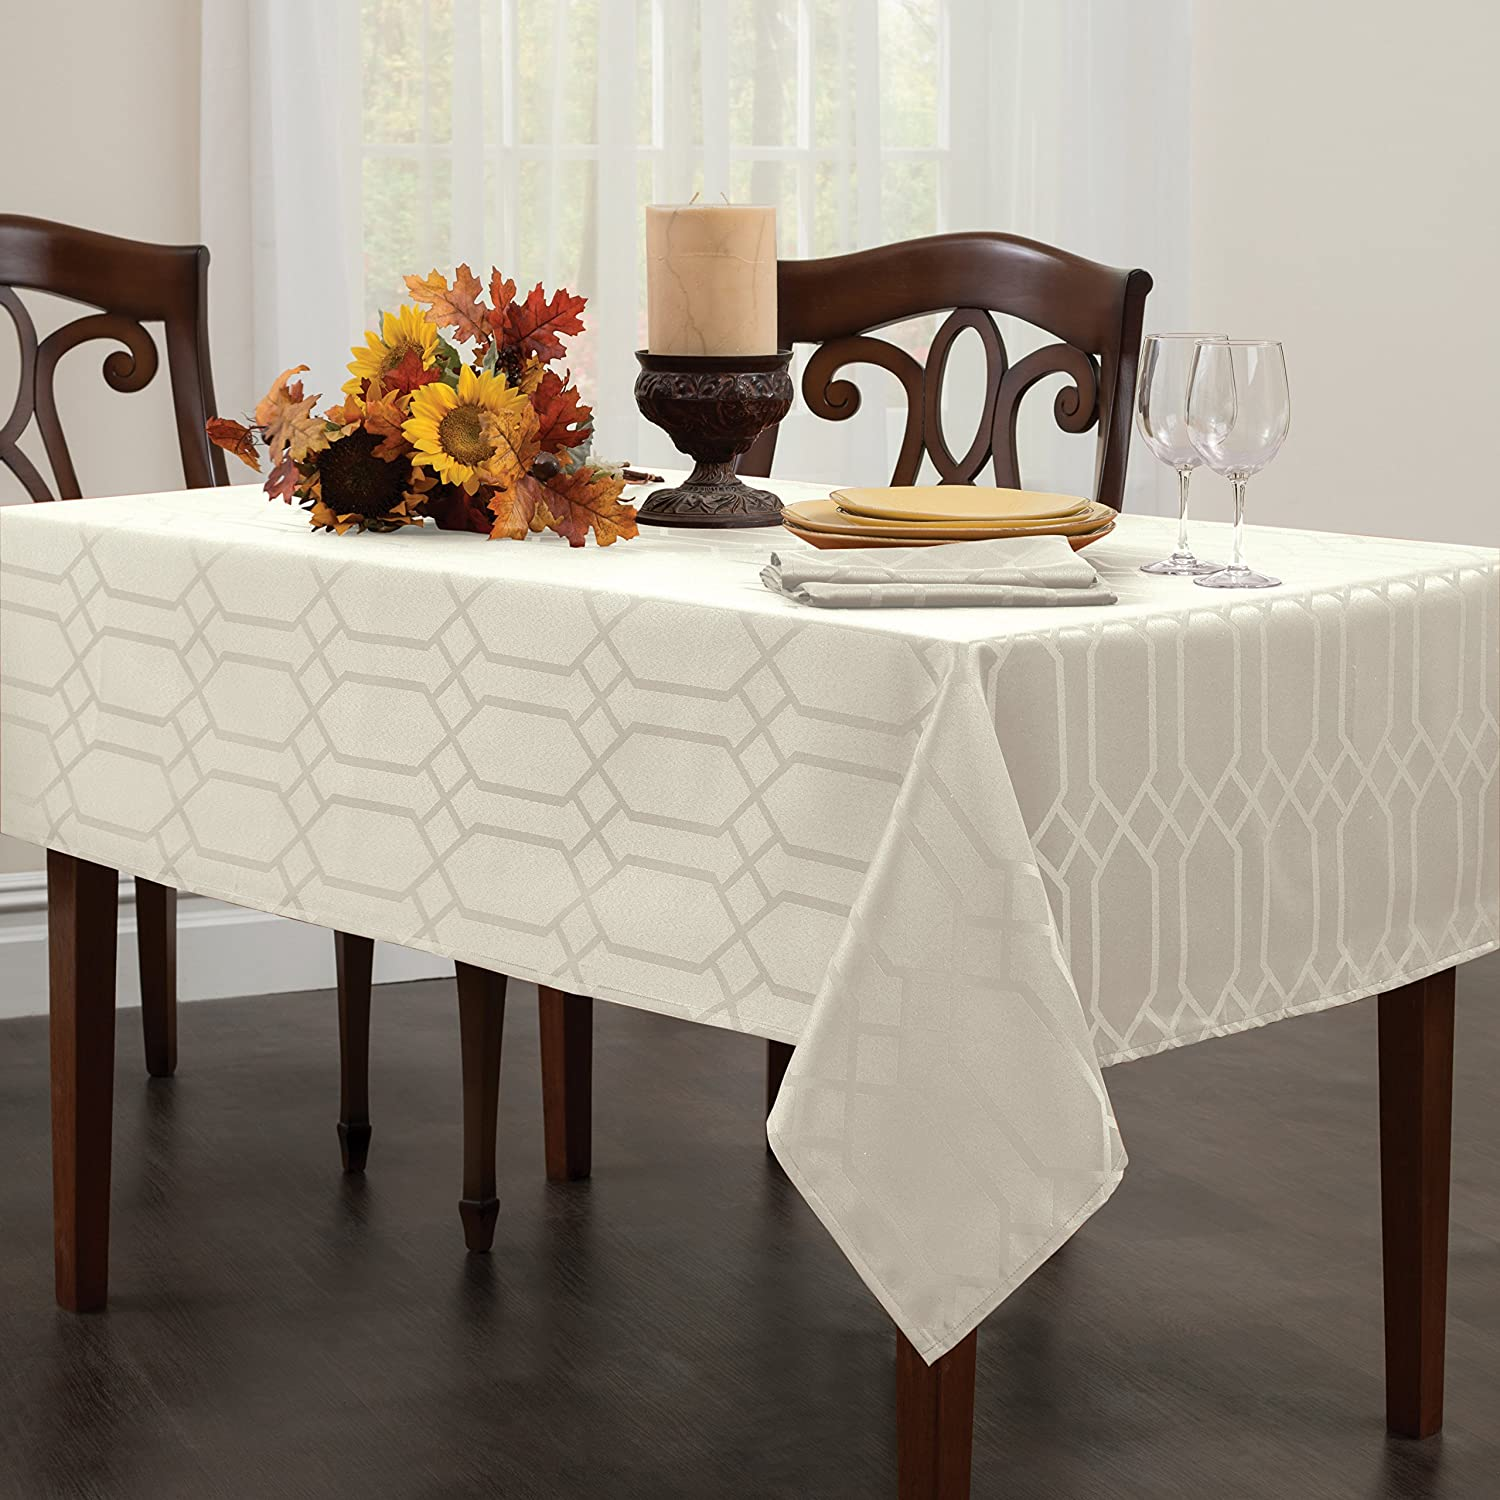 Amazon.com: Benson Mills Chagall Spillproof Fabric Tablecloth, 60 By  84 Inch, Off White: Home U0026 Kitchen Part 36